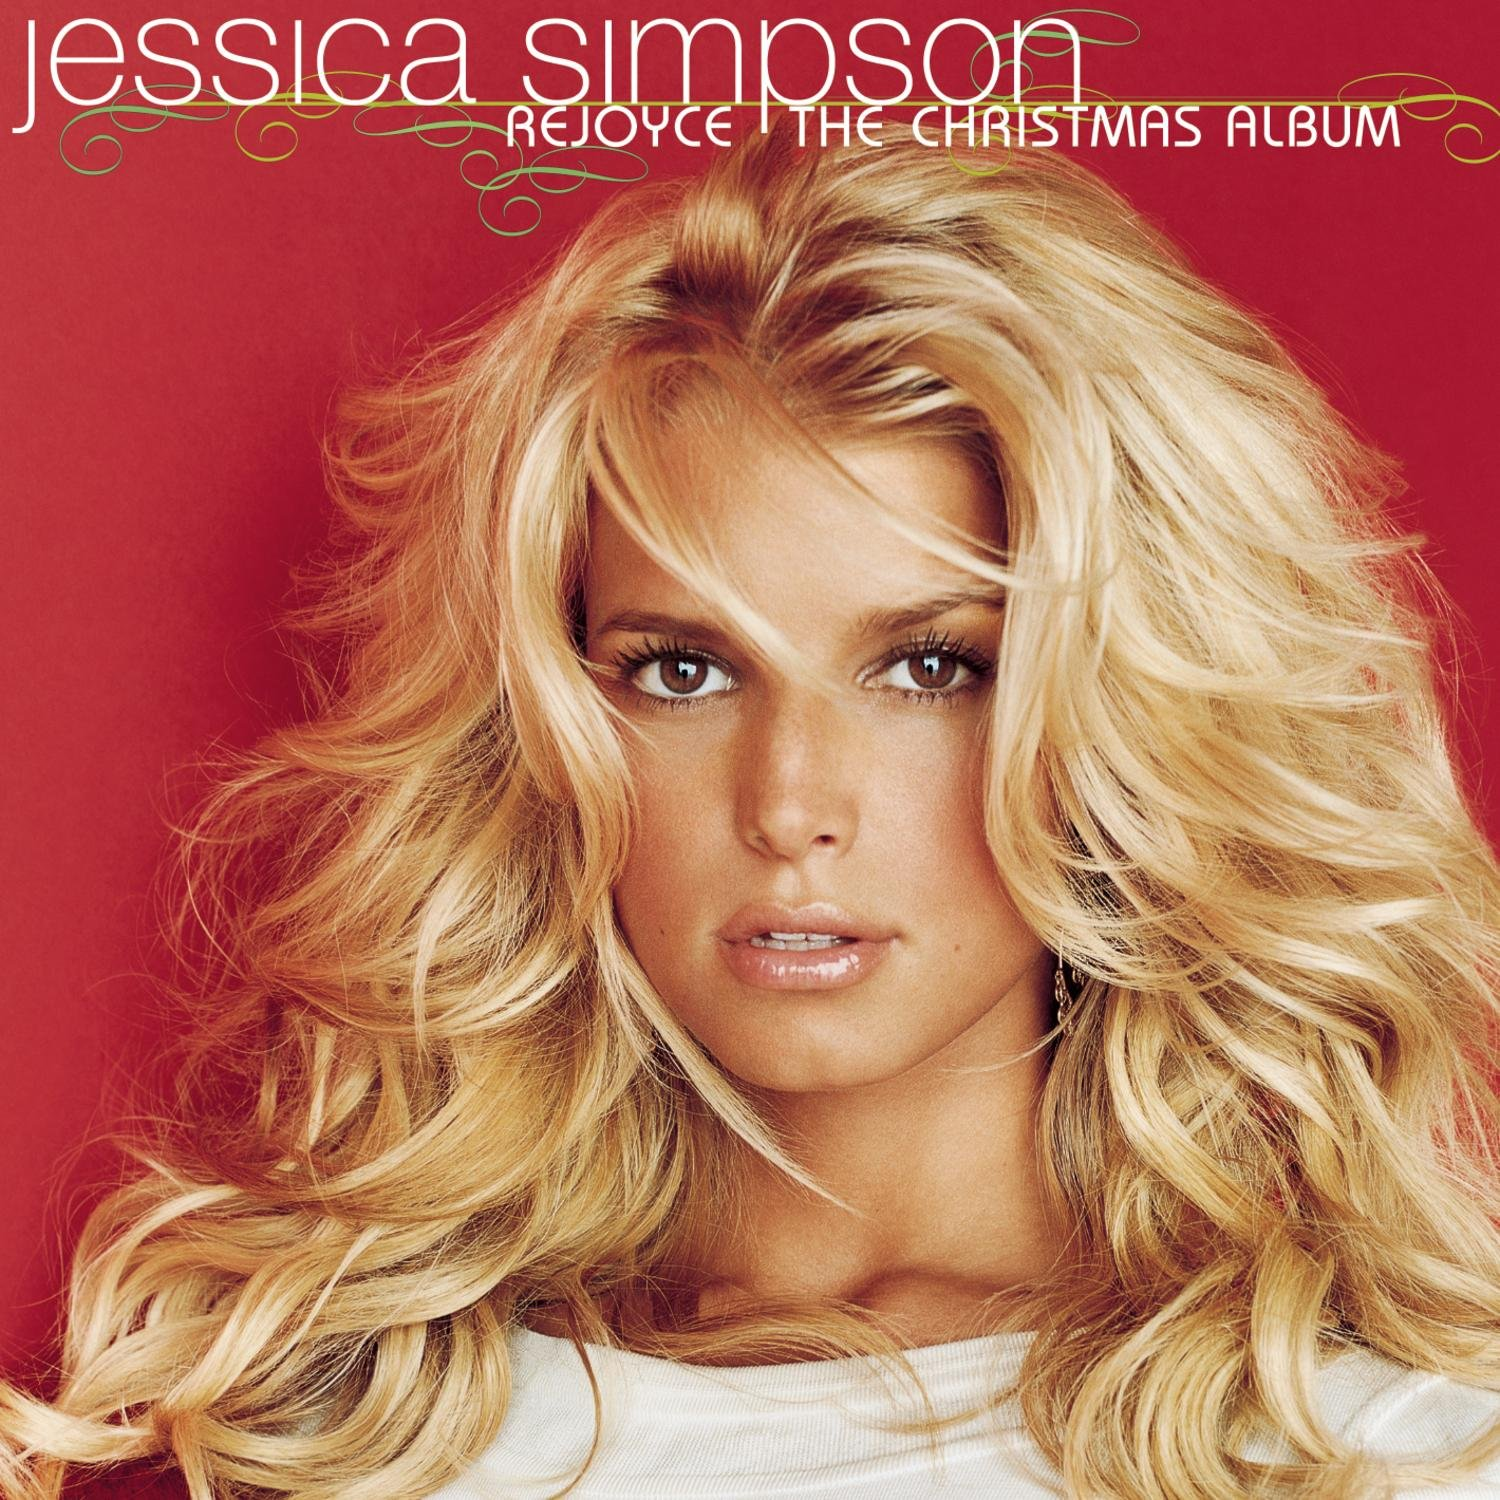 Jessica Simpson - Rejoyce: The Christmas Album - Amazon.com Music